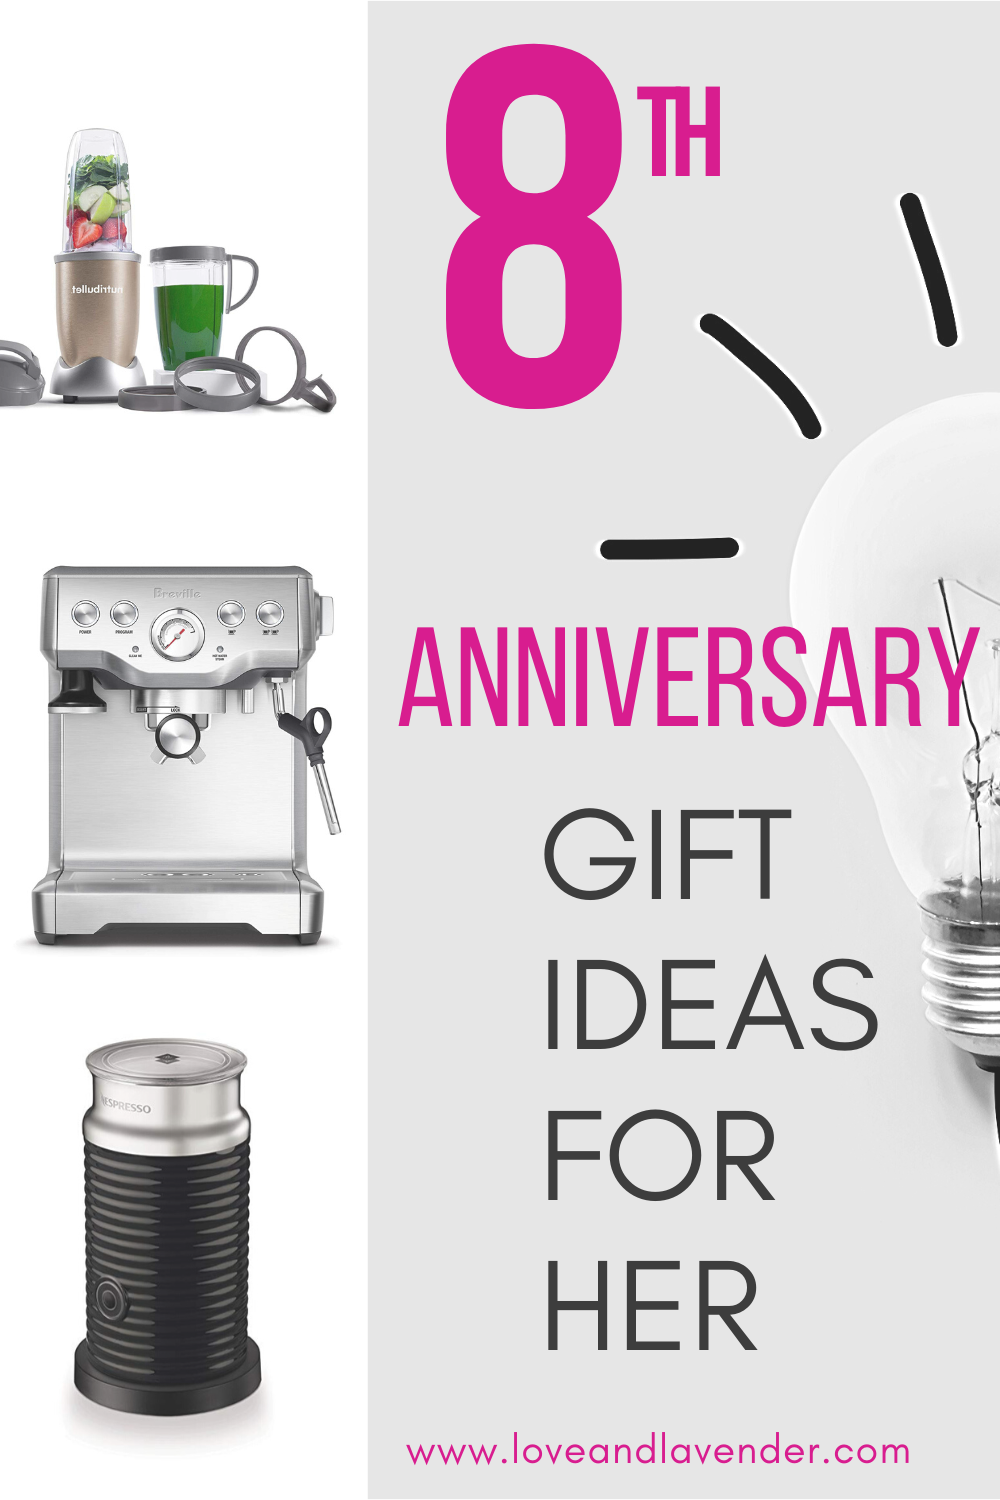 8th Anniversary Gifts (Electric Appliance) for Him & Her